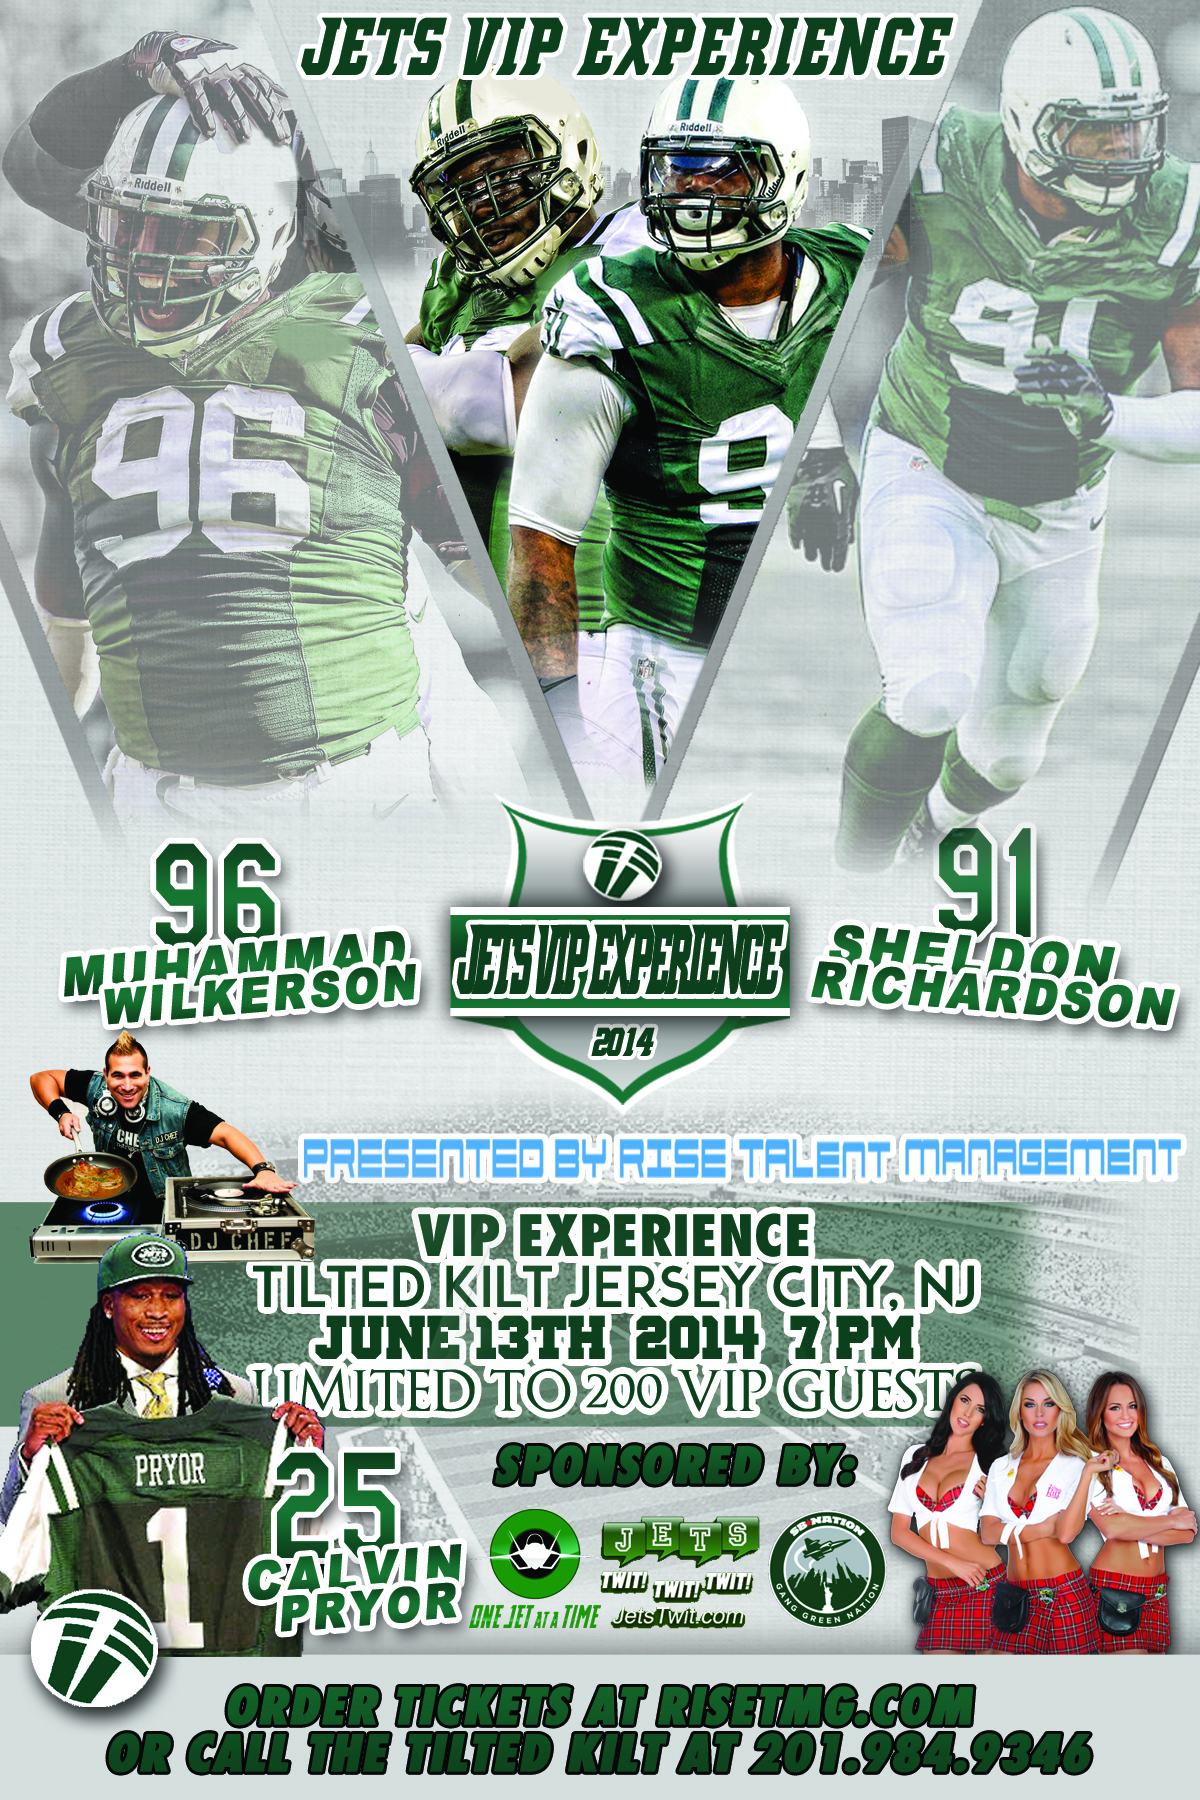 Interested in Meeting Muhammad Wilkerson Sheldon Richardson and